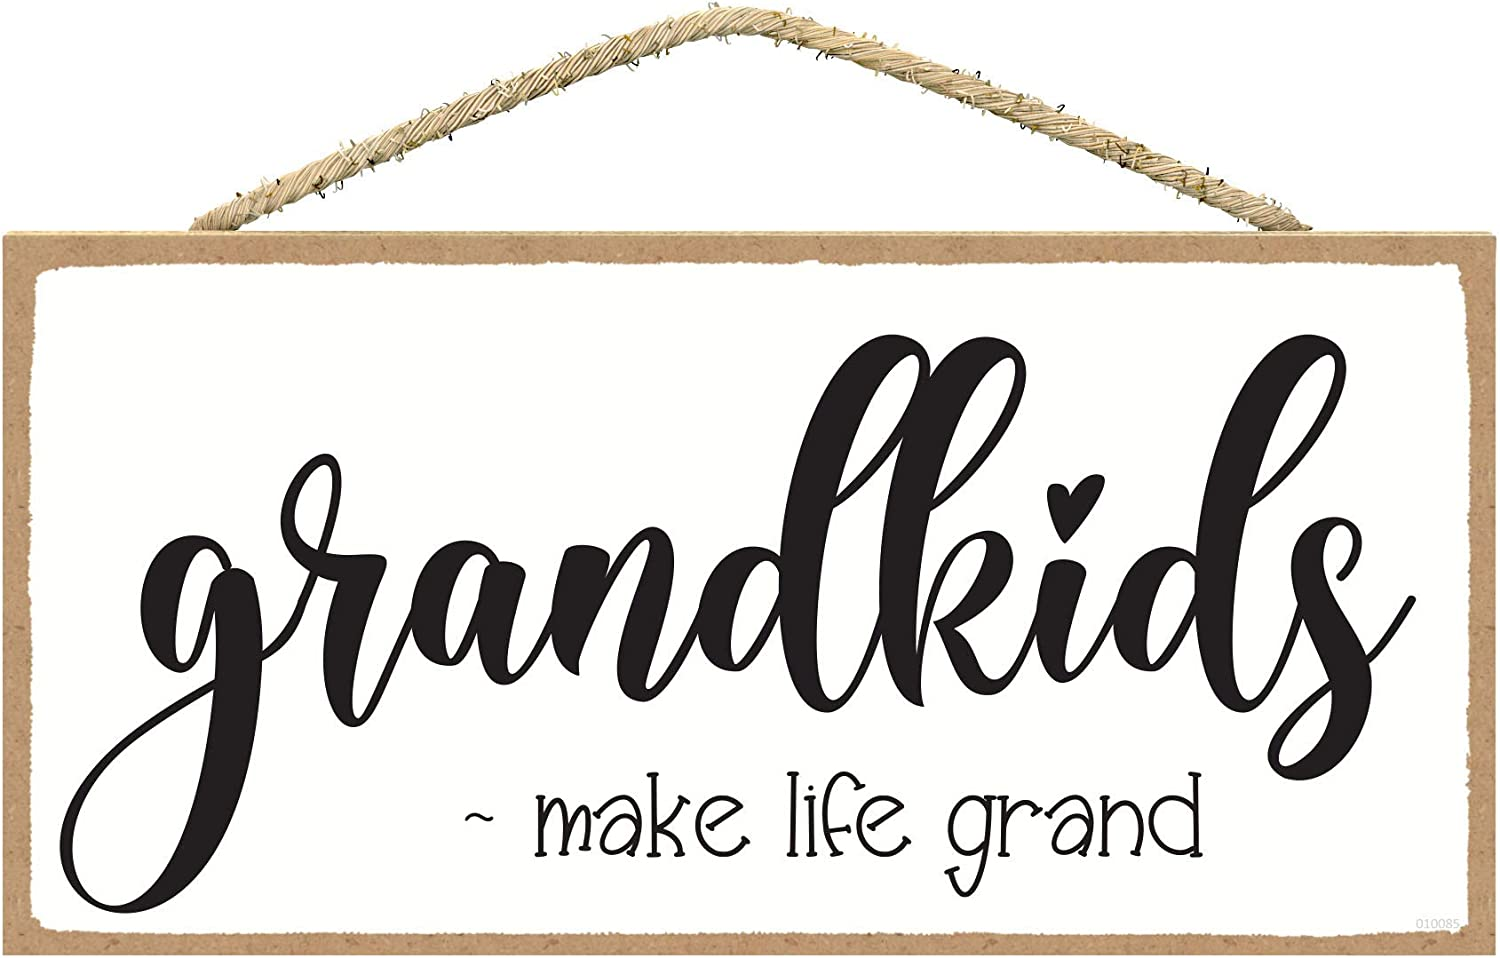 SARAH JOY'S Grandkids Make Life Grand Sign - Grandkids Signs for Home Decor - Grandparents Gift - Gifts for Home Decor - Rustic Wall Decor 5 x 10 Inches